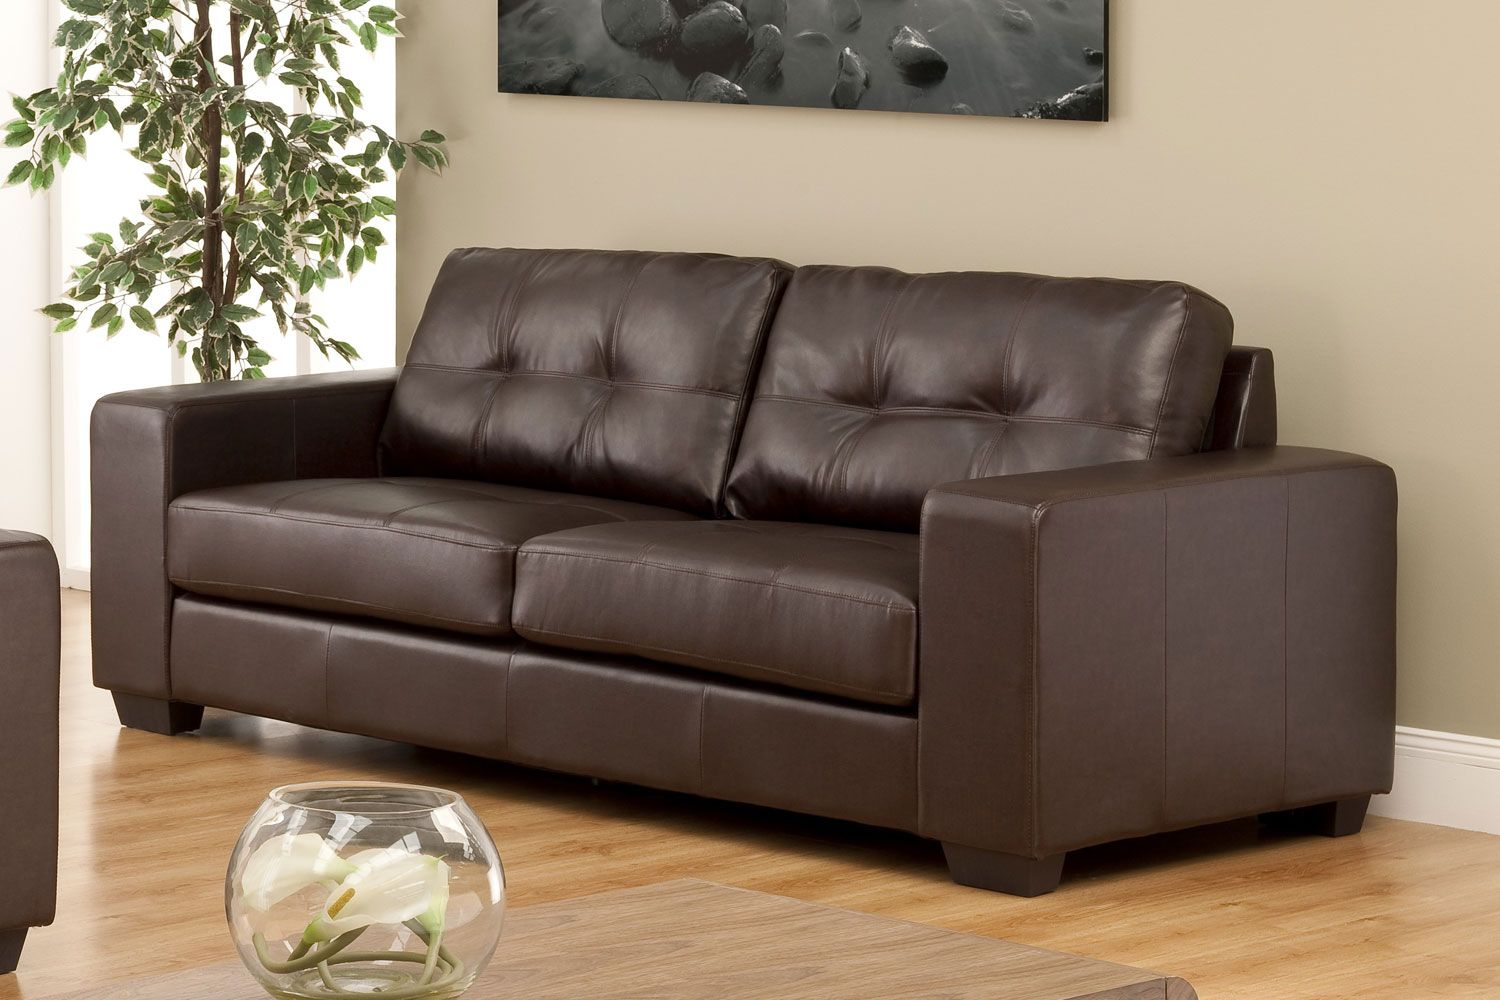 Awesome Harvey Norman Durban 3 Seater Sofa Leather Couch Sofa Beatyapartments Chair Design Images Beatyapartmentscom